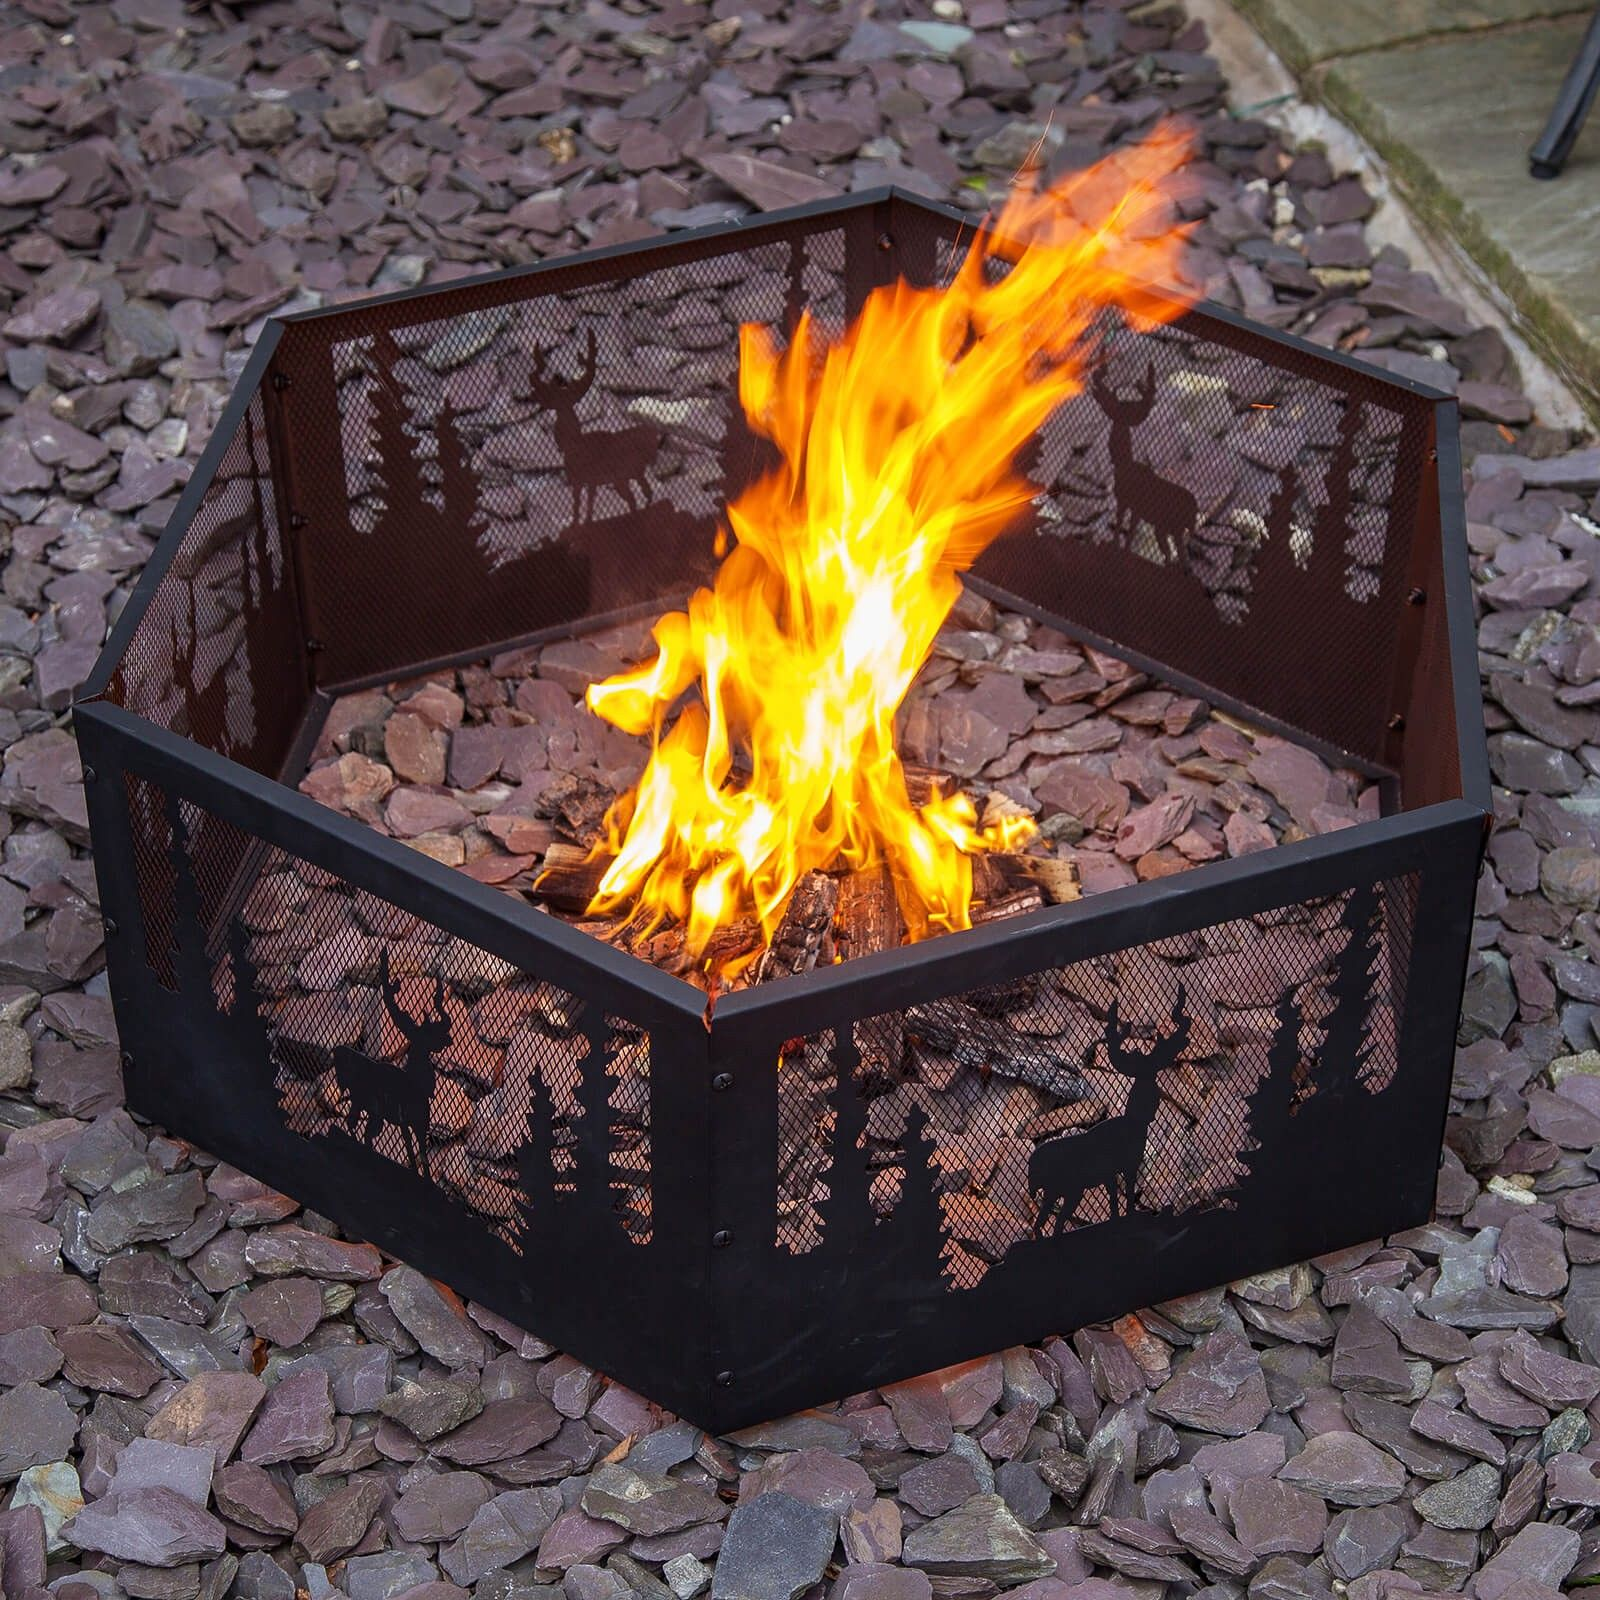 Wildlife Fire Surround Main Fire Ring Stag Design Gas Fire Pits Outdoor